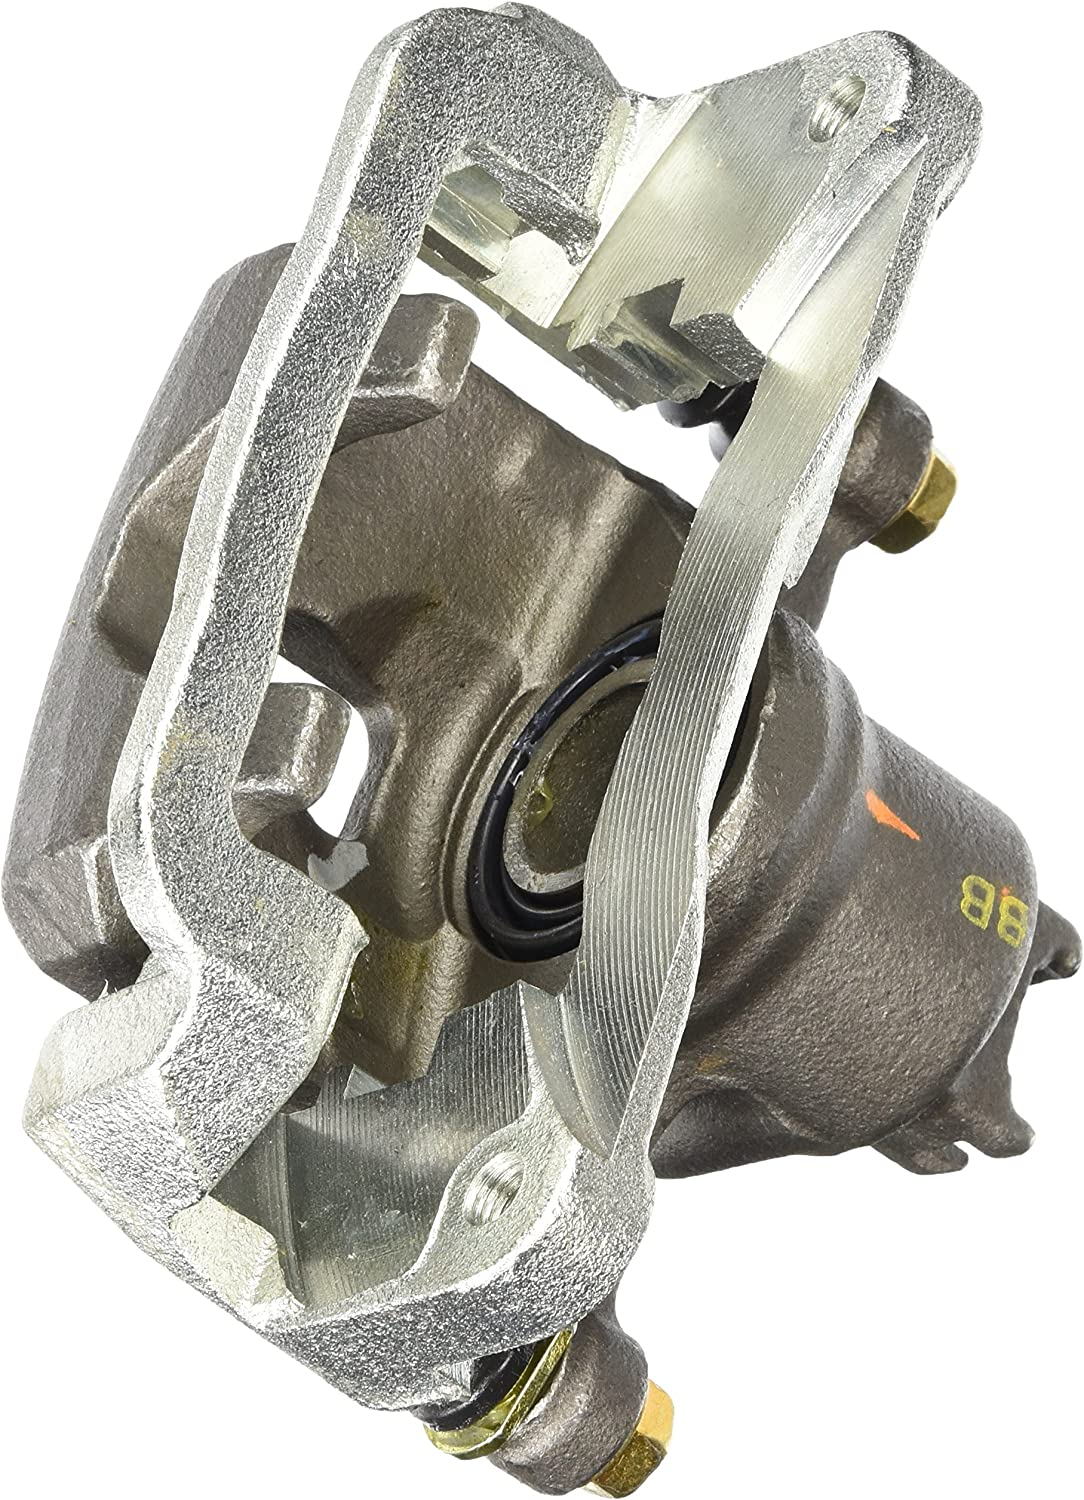 Cardone 19-B2039 Remanufactured Import Friction Ready Brake Caliper Unloaded